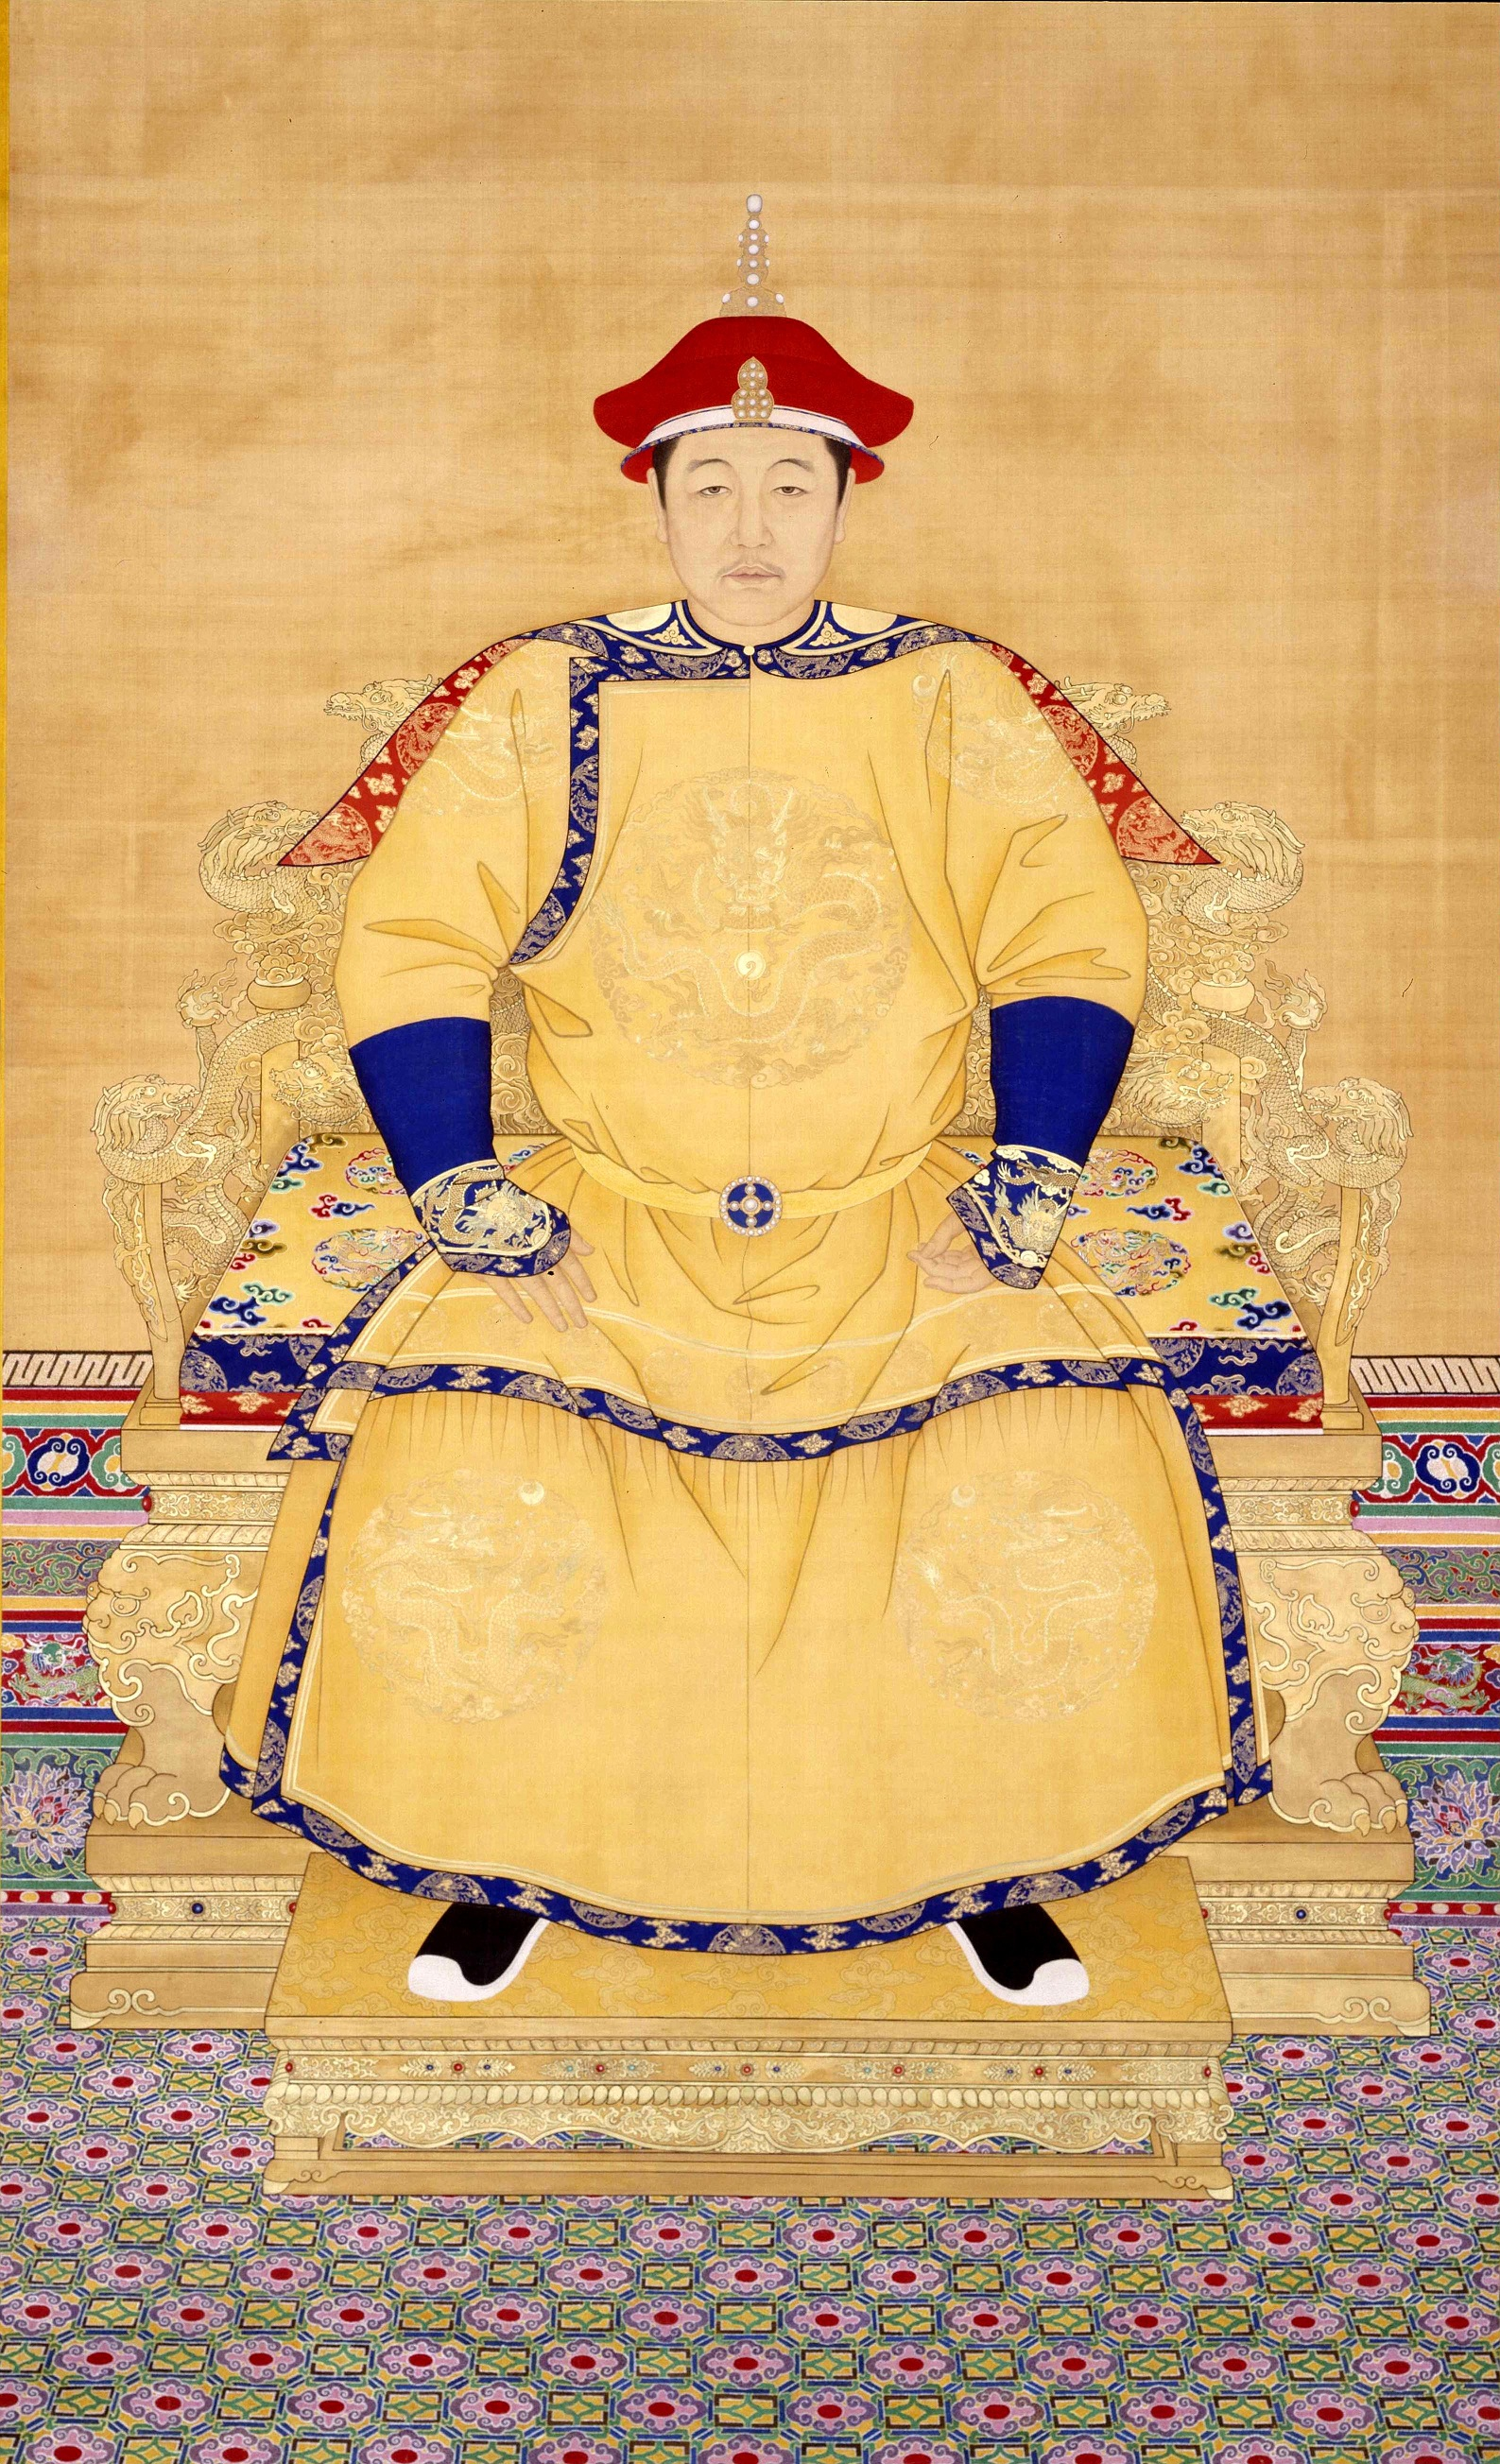 The Emperor Seven Tarot Cards From Different Packs Other: Shunzhi Emperor